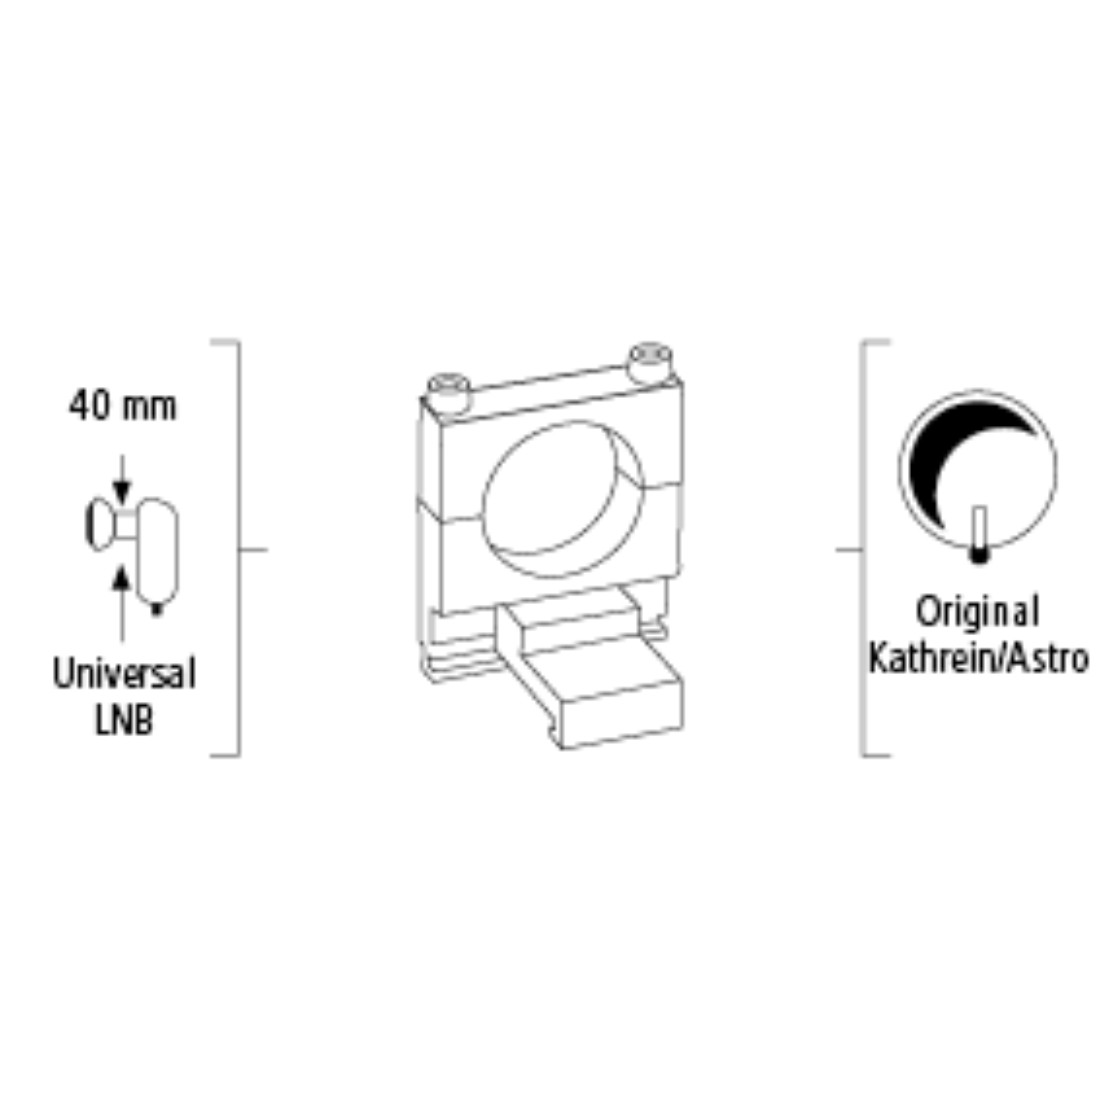 stx High-Res Line Drawing - Hama, Universal LNB Adapter for Kathrein and Astro SAT Antennas